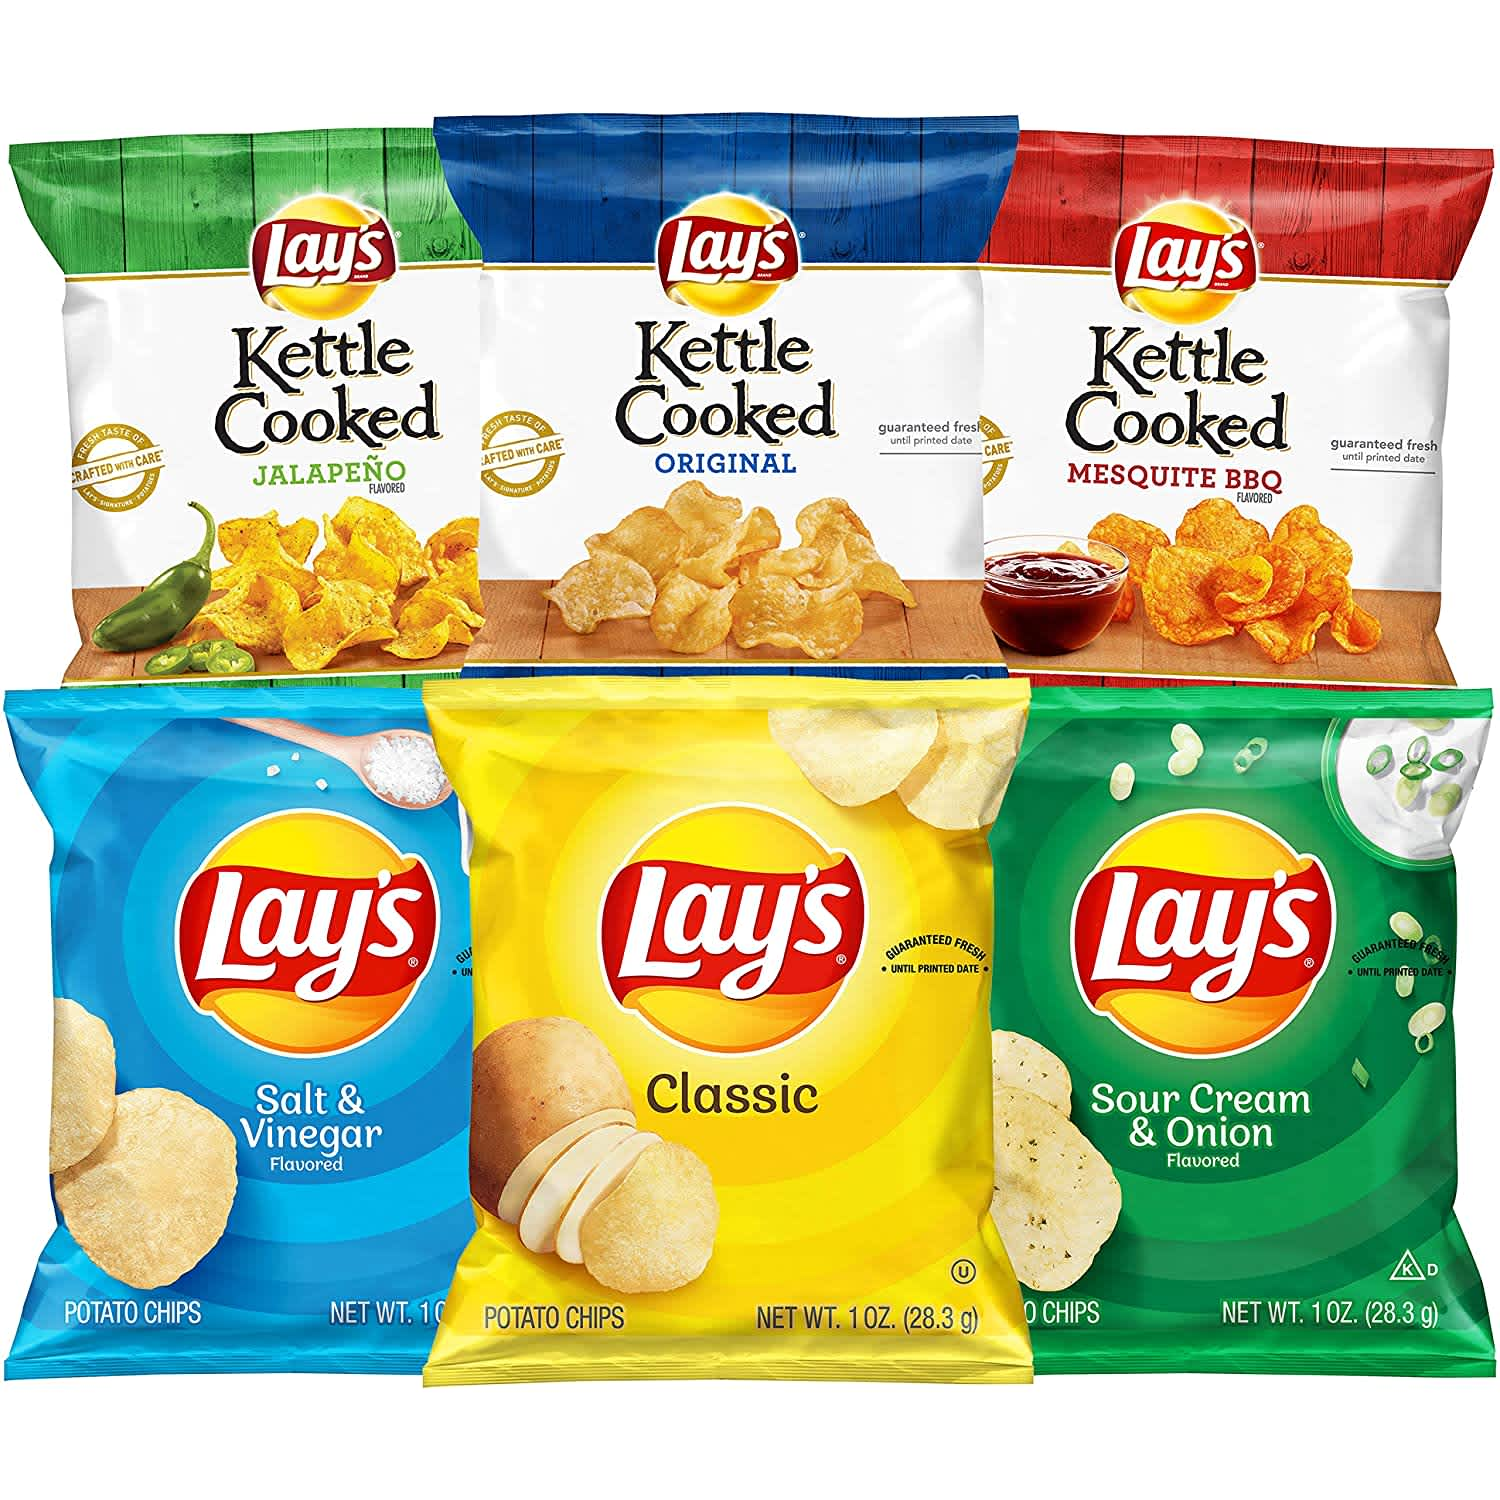 Lay's and Lay's Kettle Cooked Potato Chips Variety 40-Pack